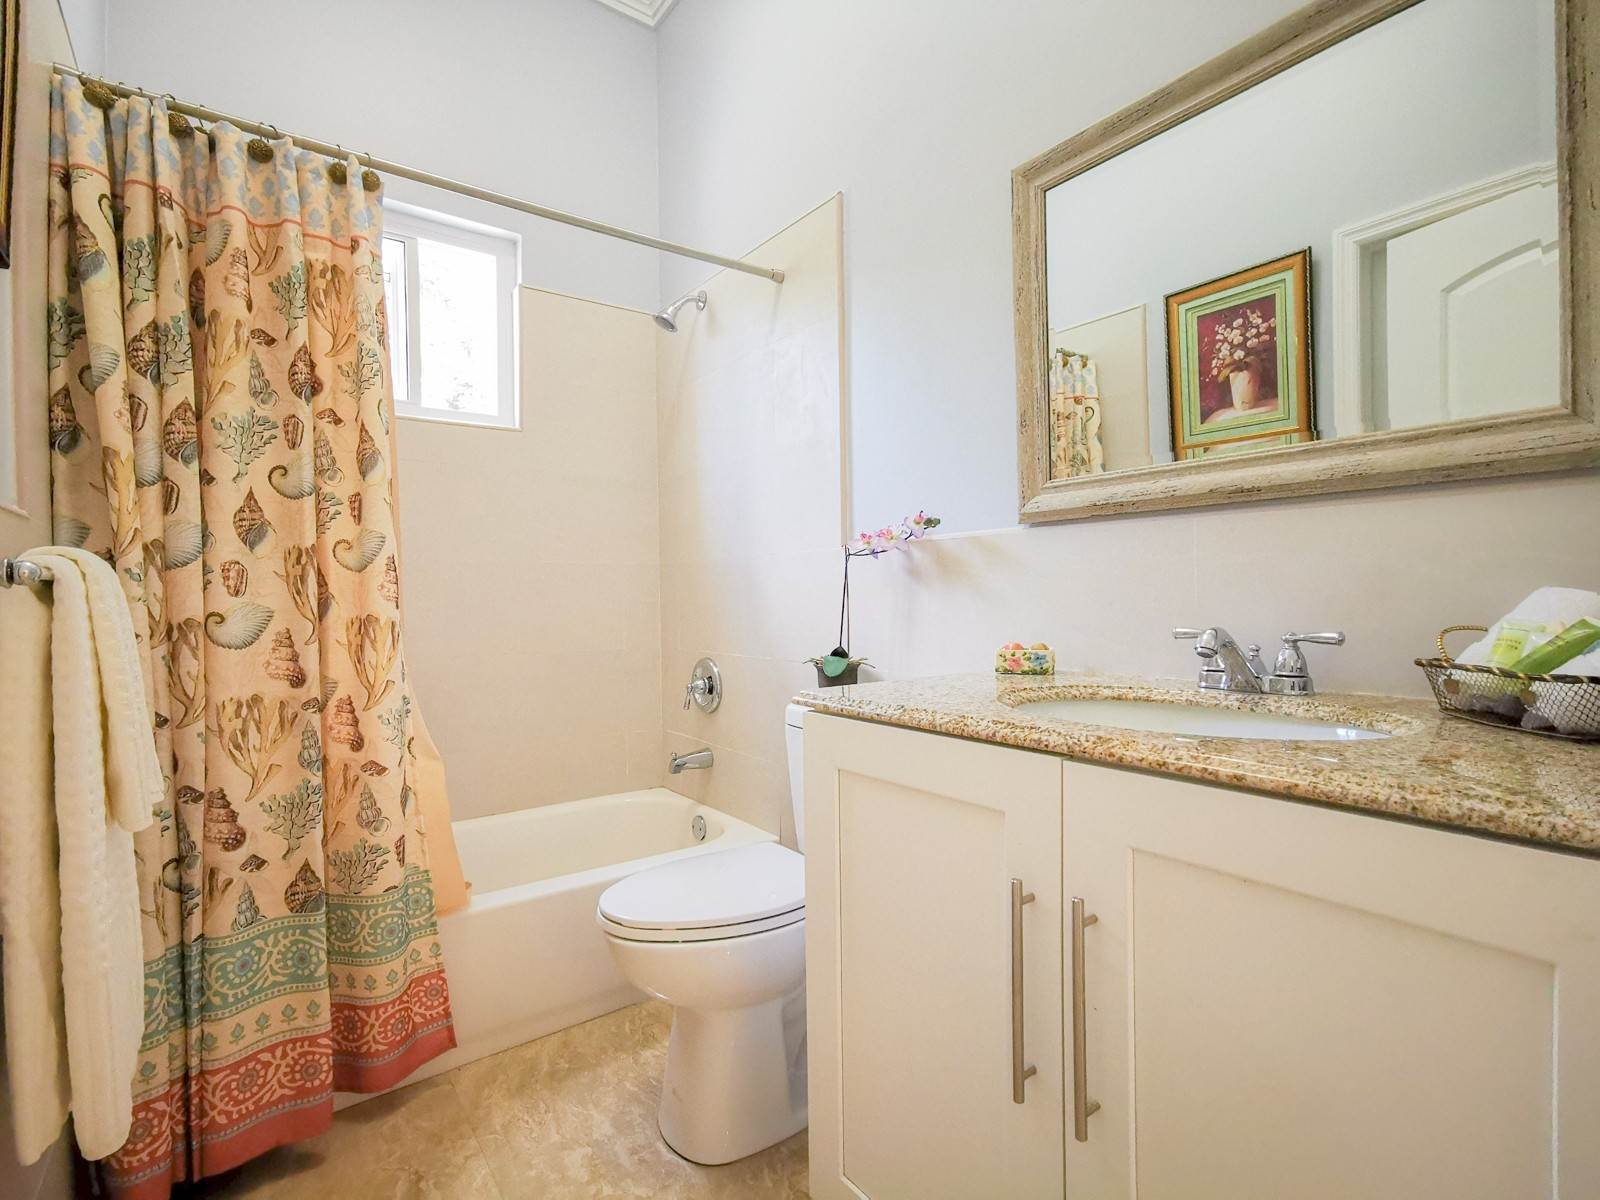 22. Single Family Homes for Sale at Villa Greenway House for Sale - MLS 41427 Charlotteville, Nassau And Paradise Island, Bahamas